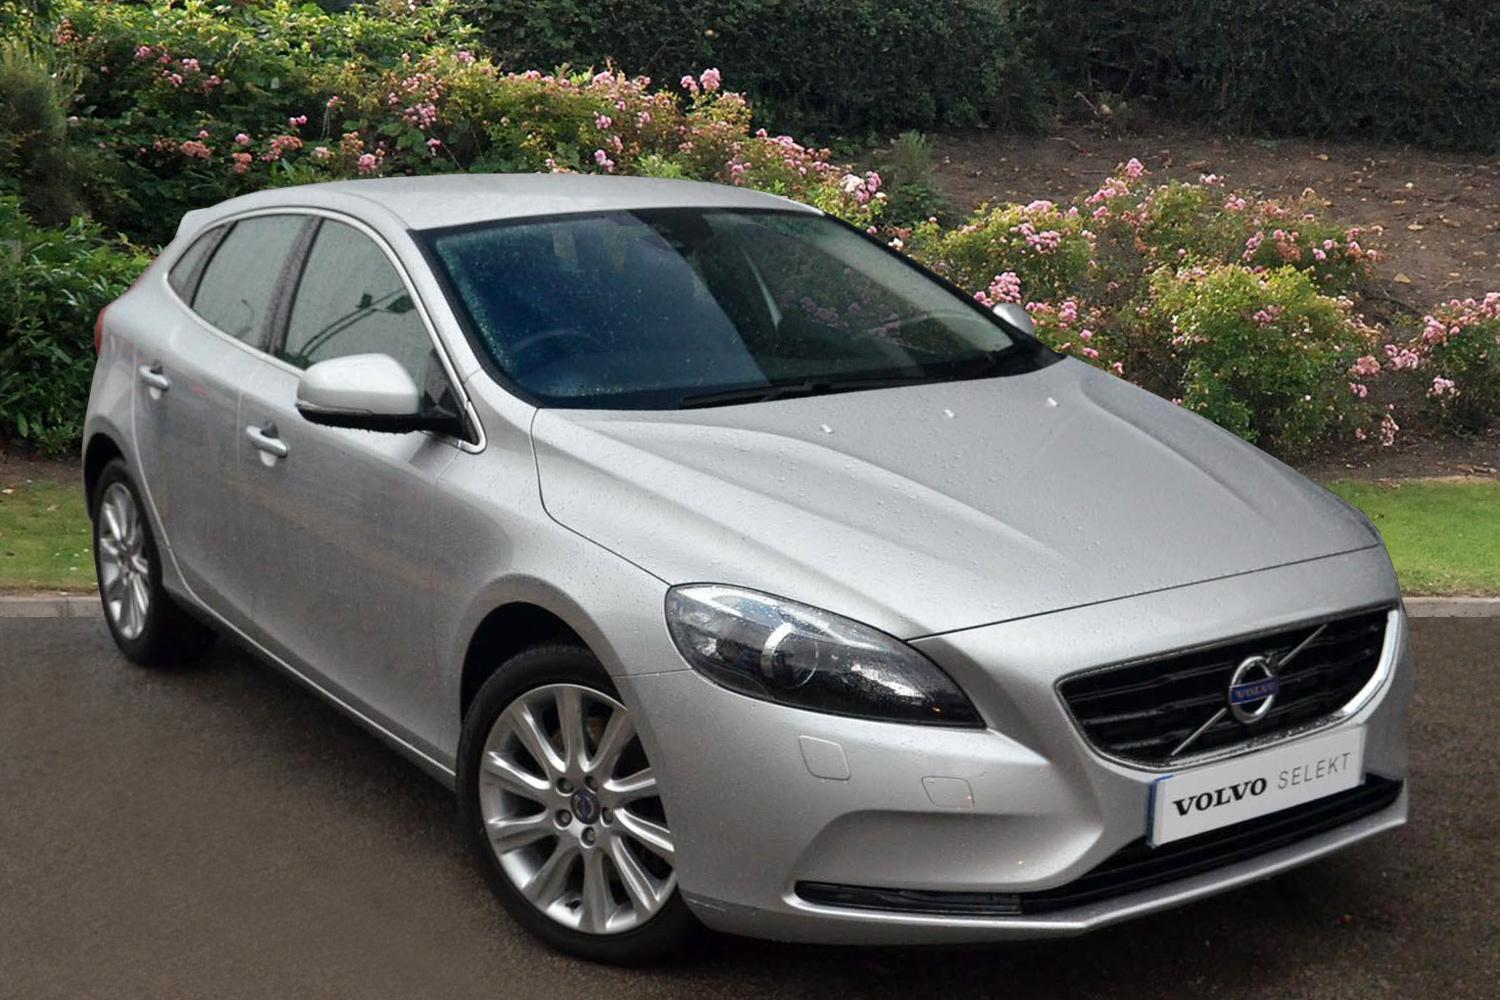 used volvo v40 d3 se lux nav 5dr diesel hatchback for sale. Black Bedroom Furniture Sets. Home Design Ideas